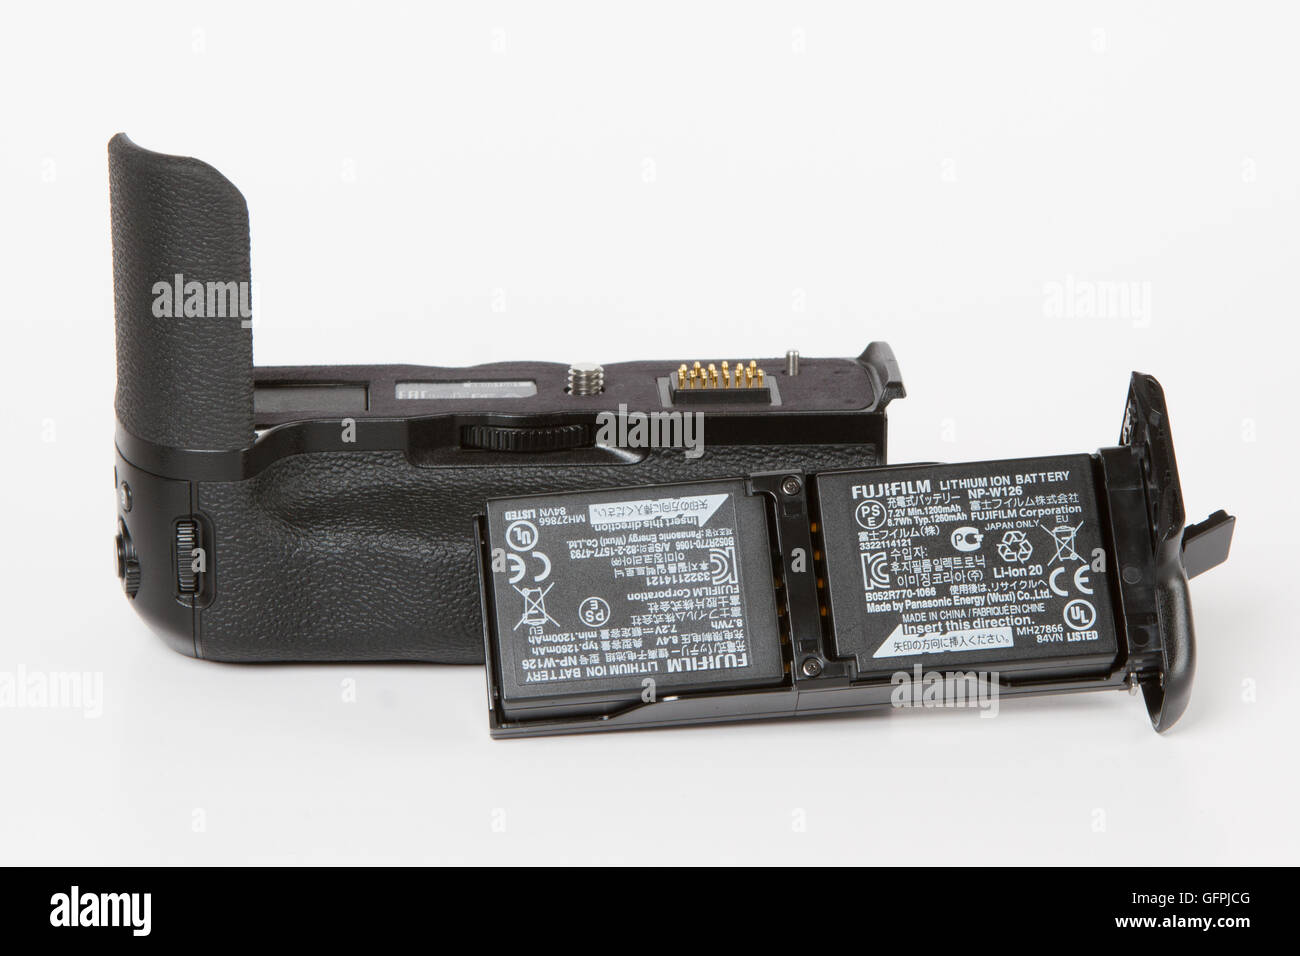 additional battery grip with batteries for FUJIFILM X-T2, 24 megapixels, 4K video mirrorless camera on white background - Stock Image